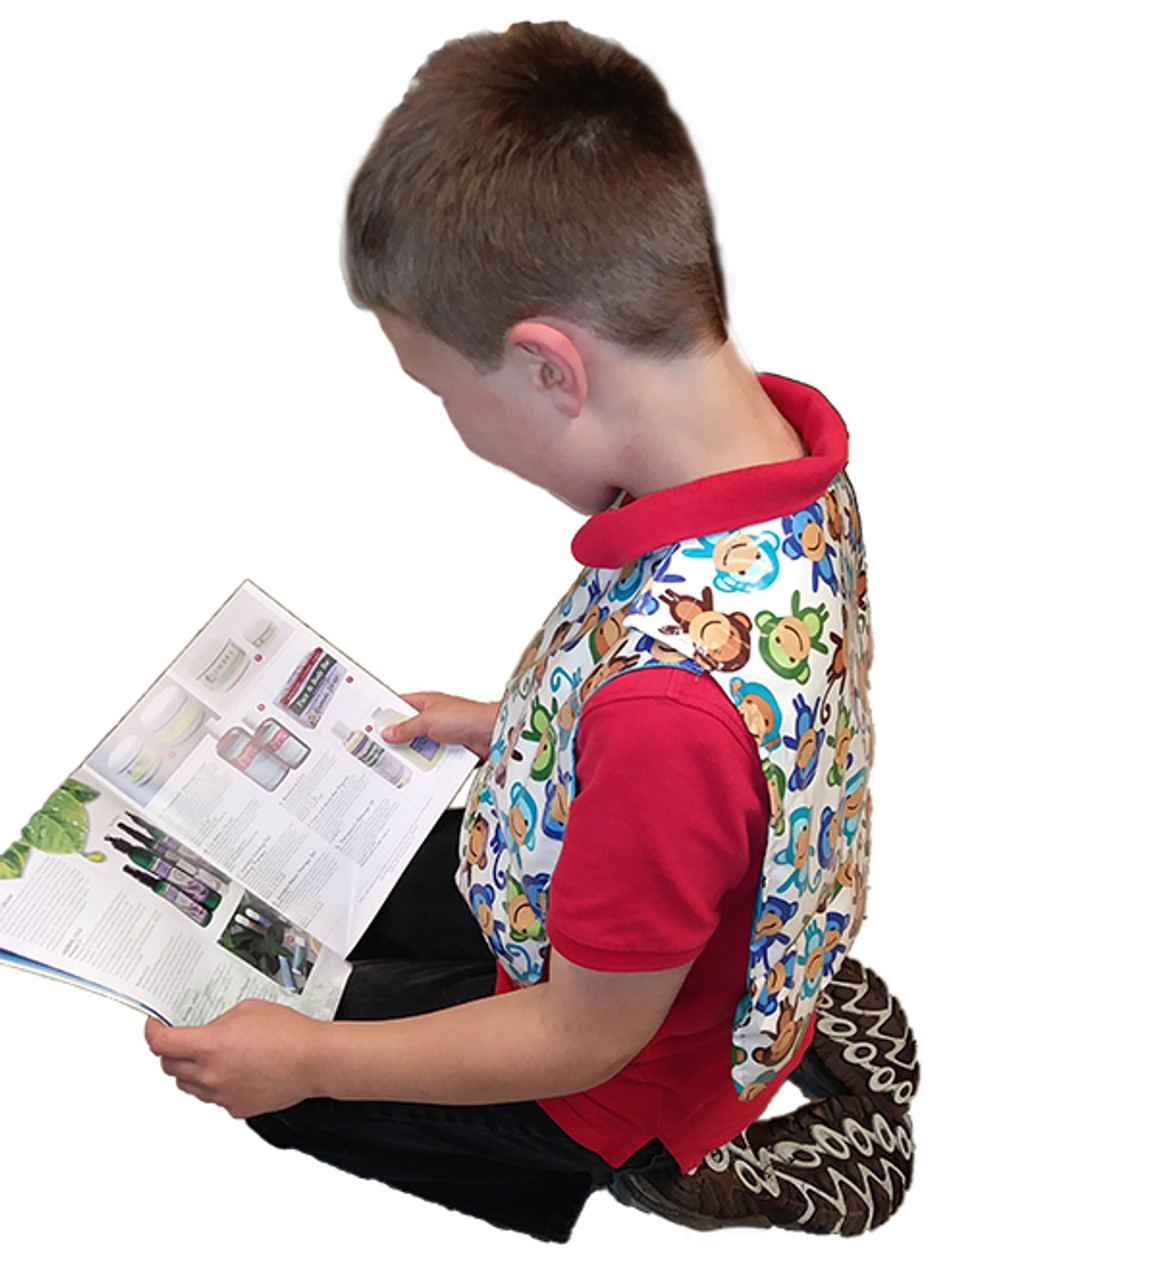 Weighted Washable Vest for Kids with Sensory Integration, Focusing, Relaxing, More. Made in Maine USA by Grampa's Garden